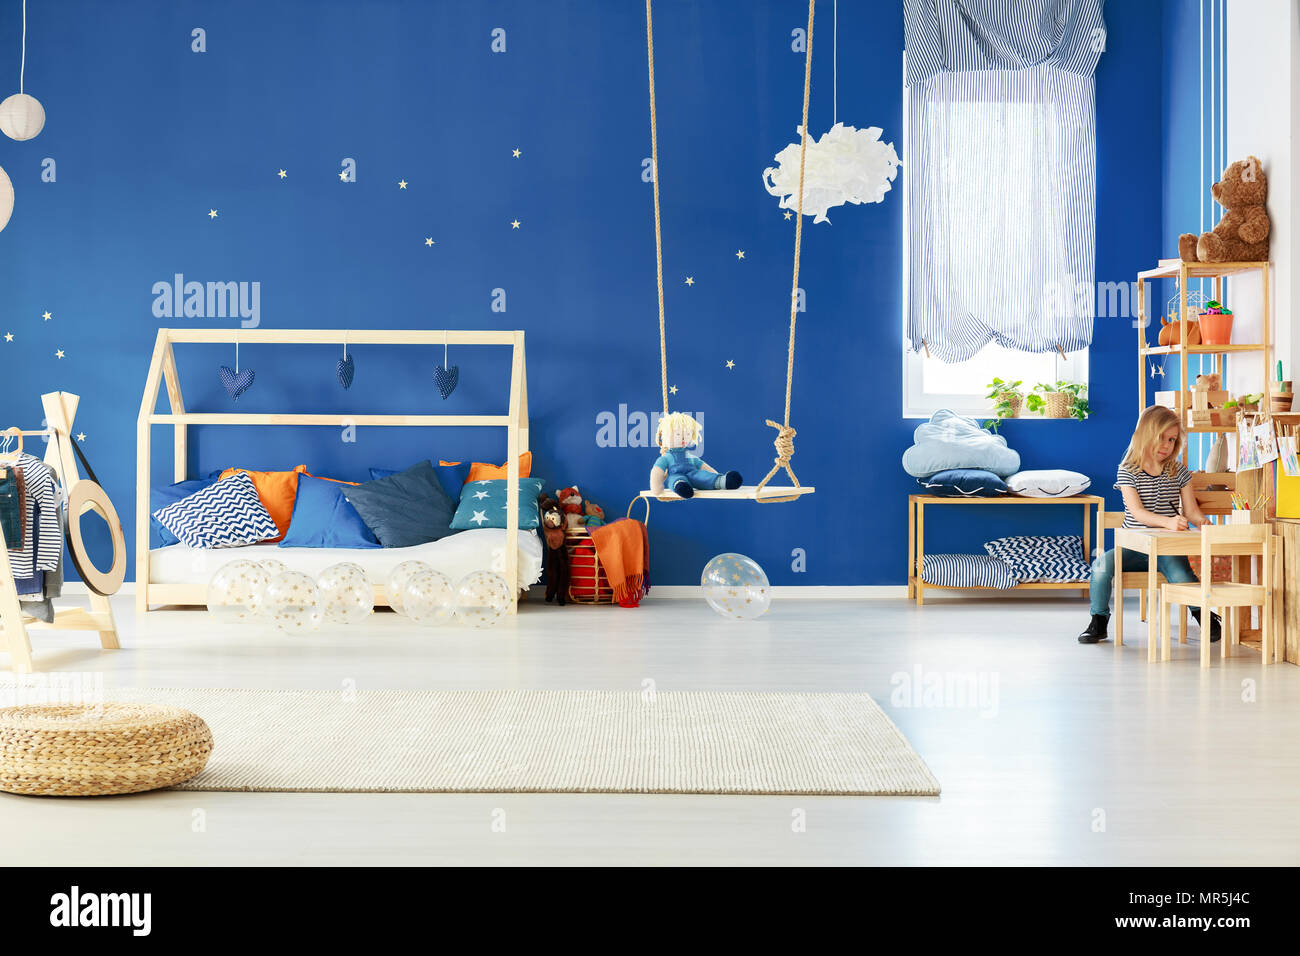 Functional Child Room With Swing Diy Bed Table And